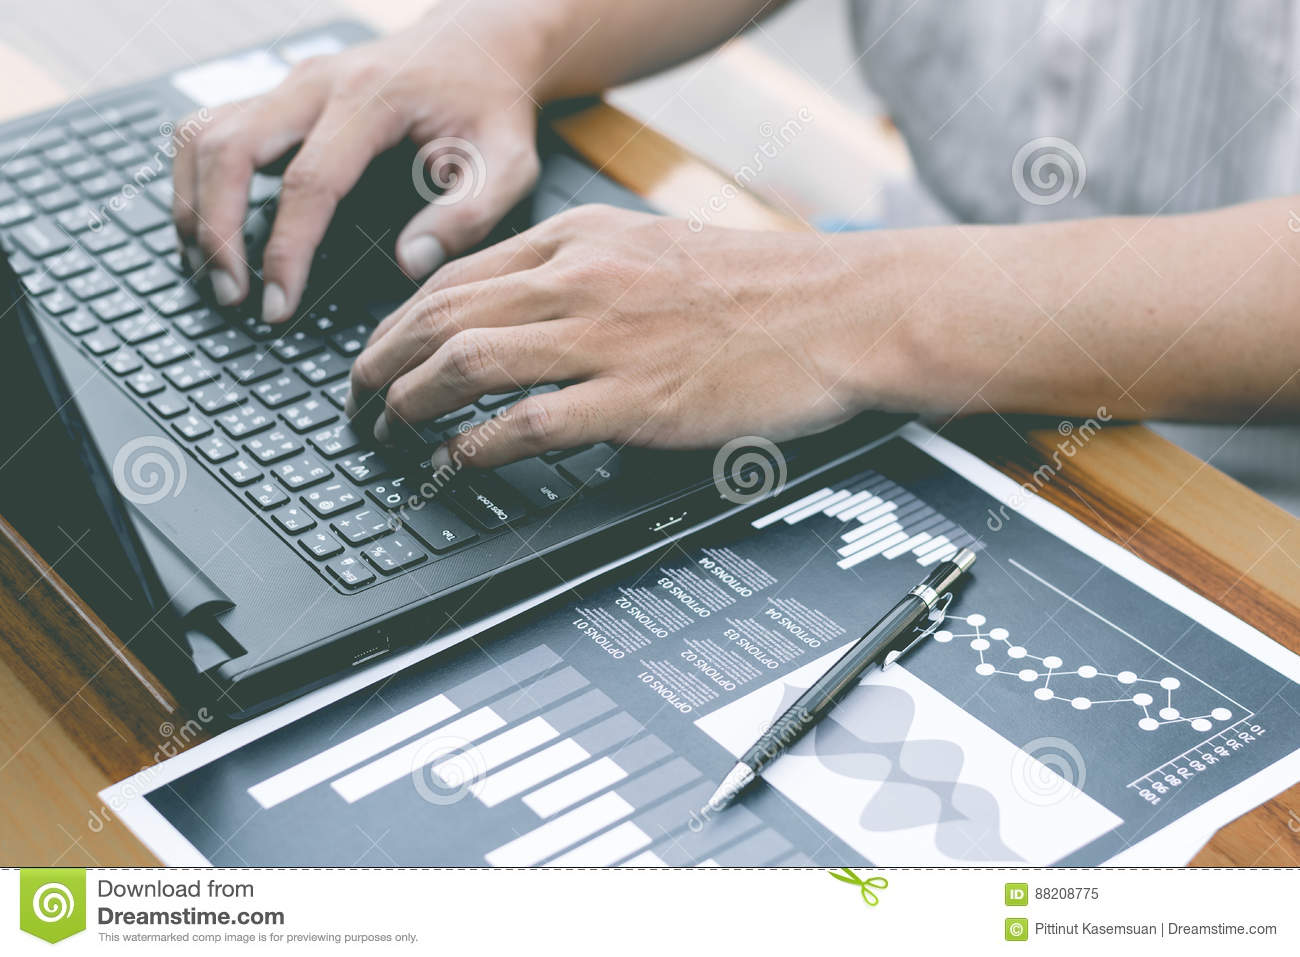 business technology concept,Business people hands use smart phone and laptop for business analyst project on table